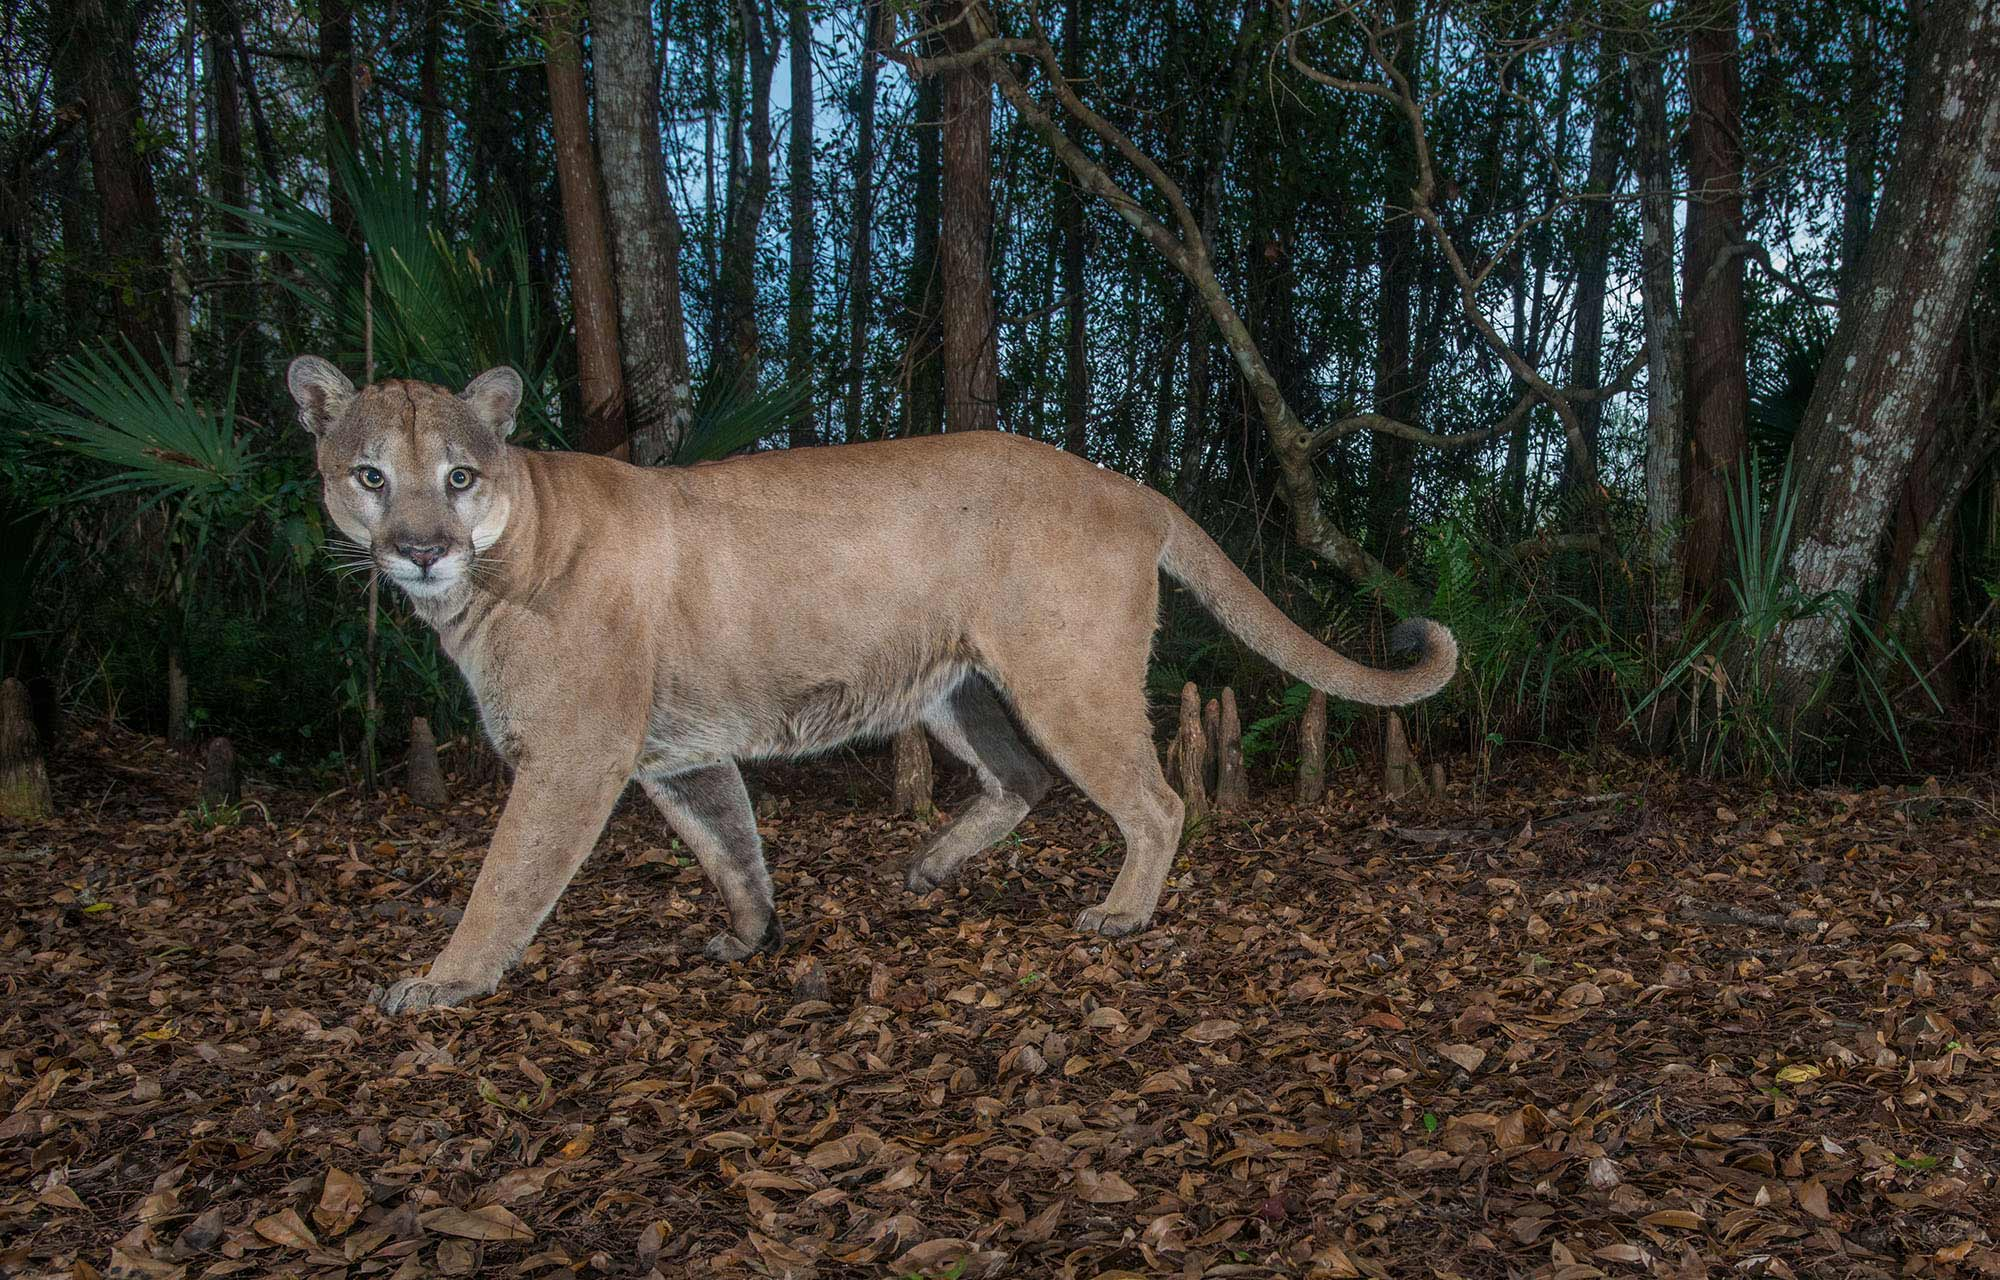 panther inBagdara Wildlife Sanctuary